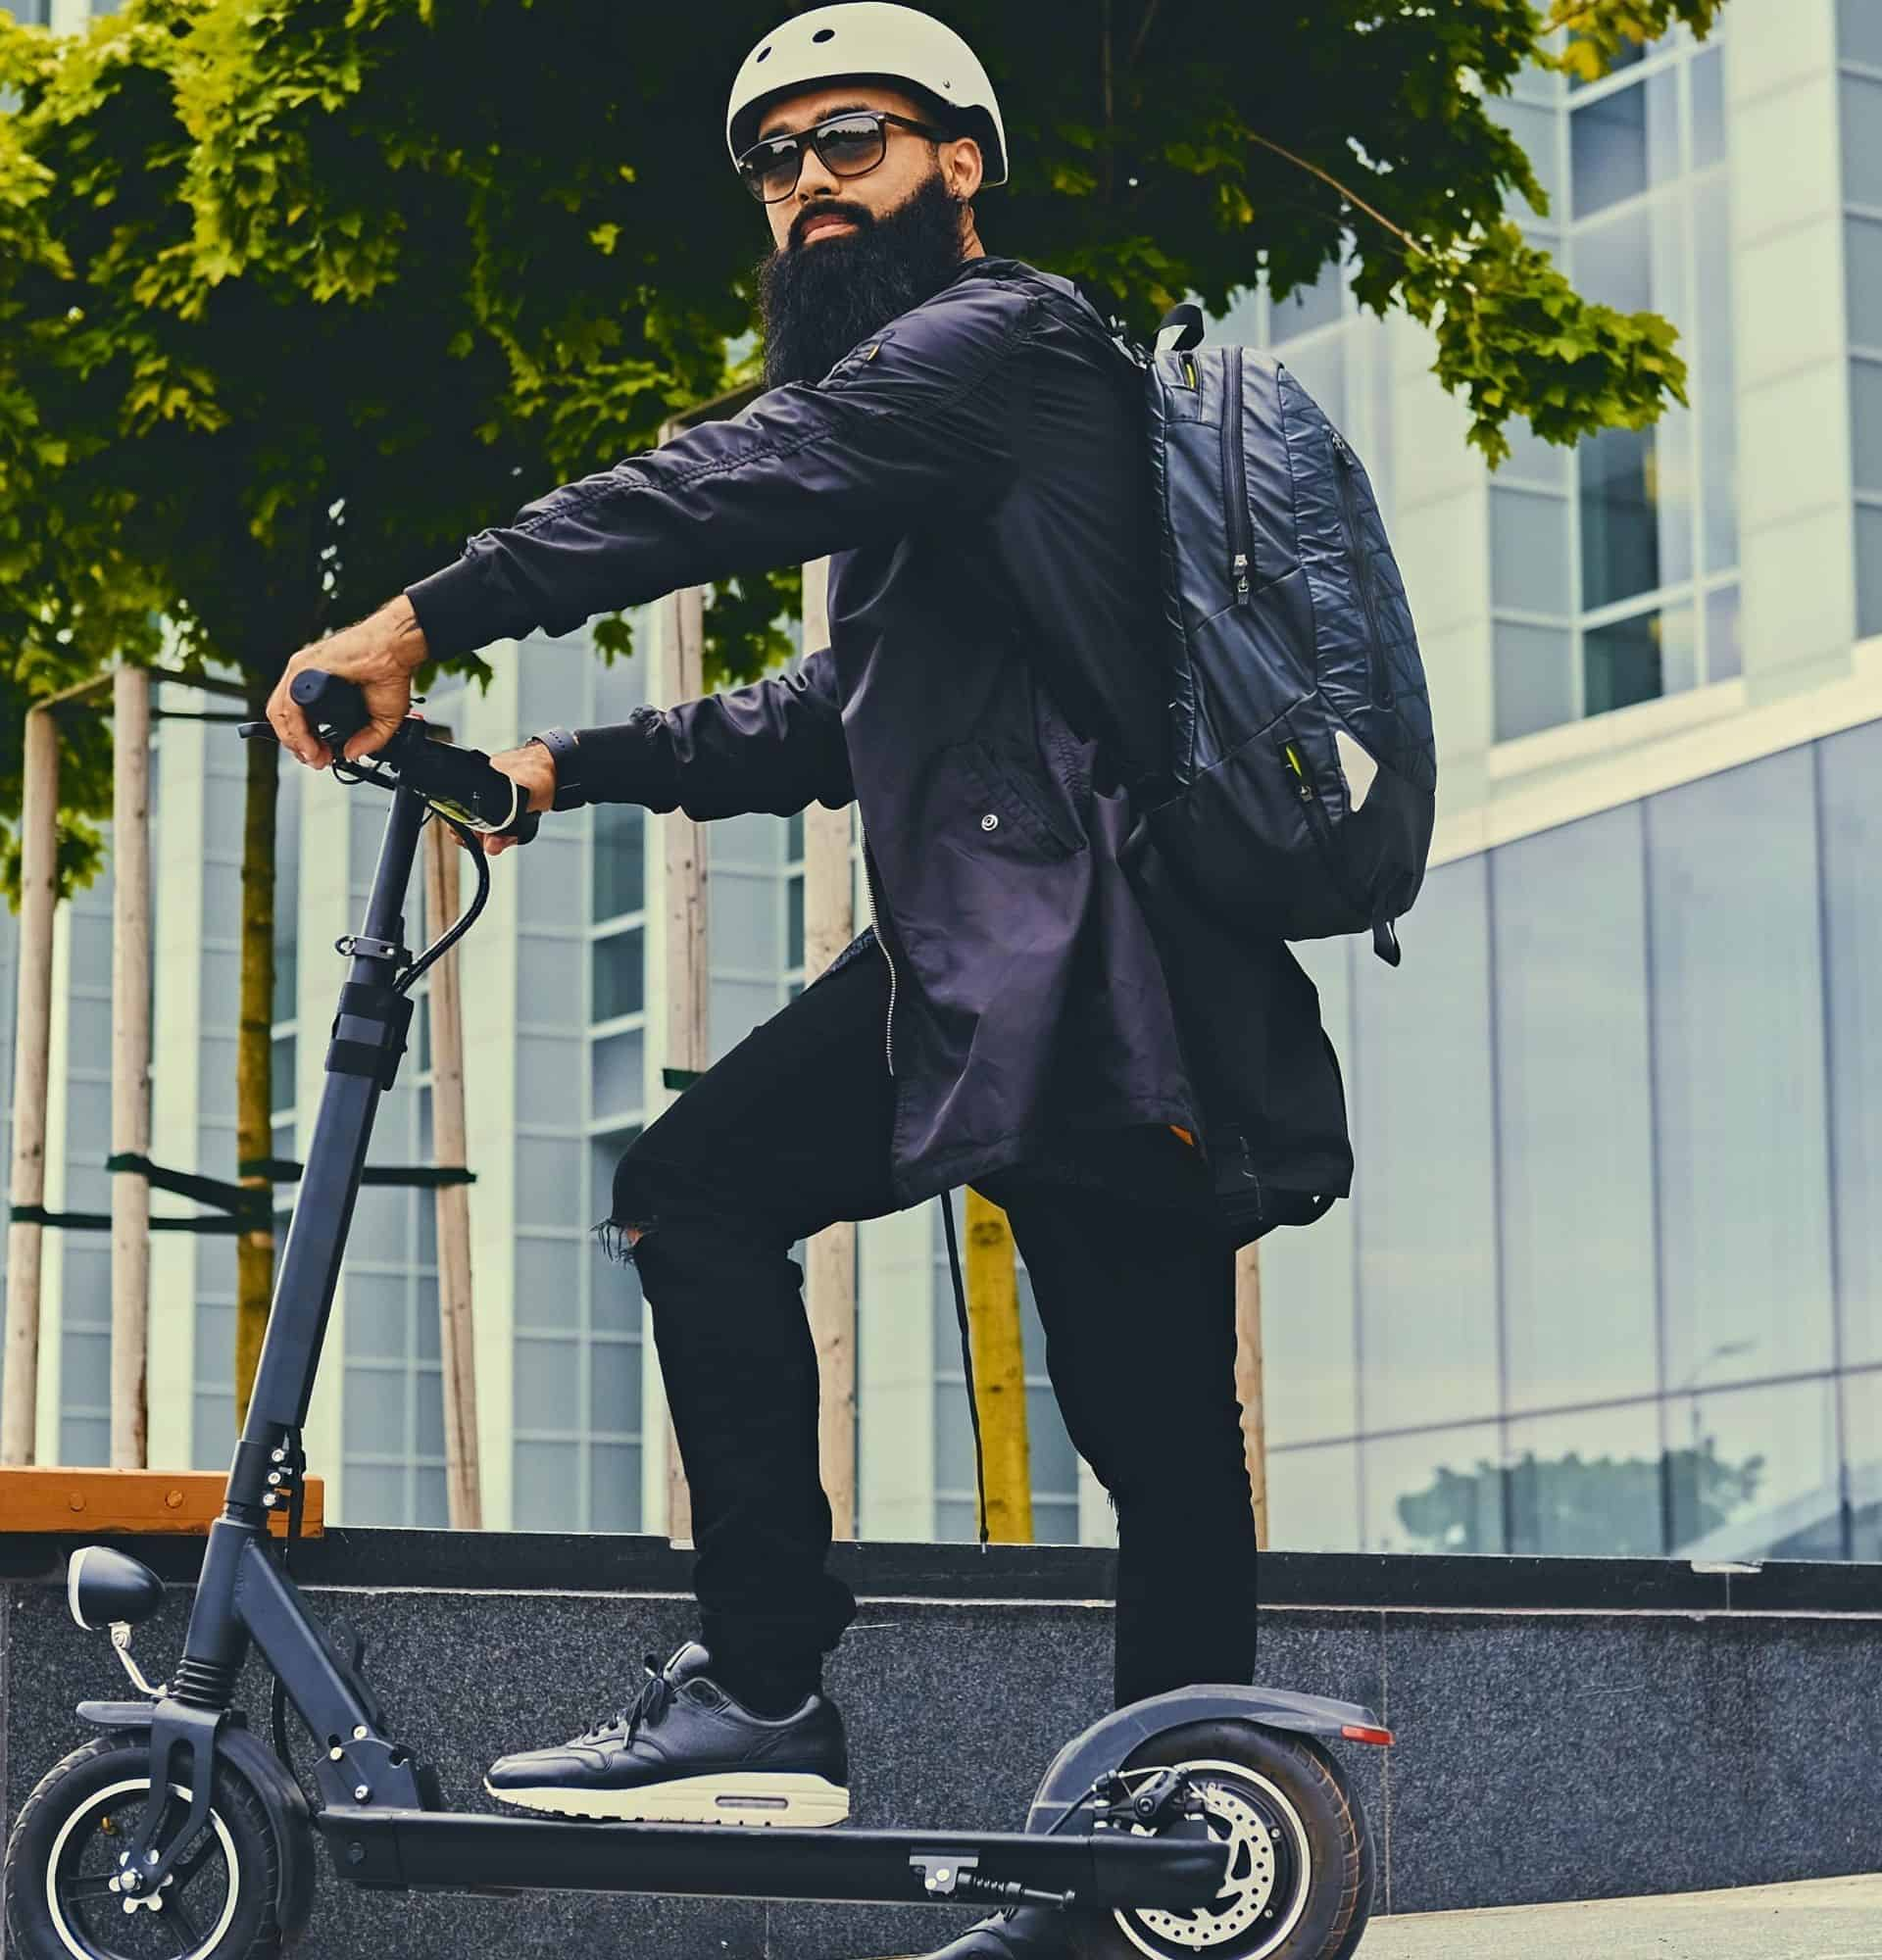 What's electric scooters weight limit (Load Capacity) and how heavy are they? 3